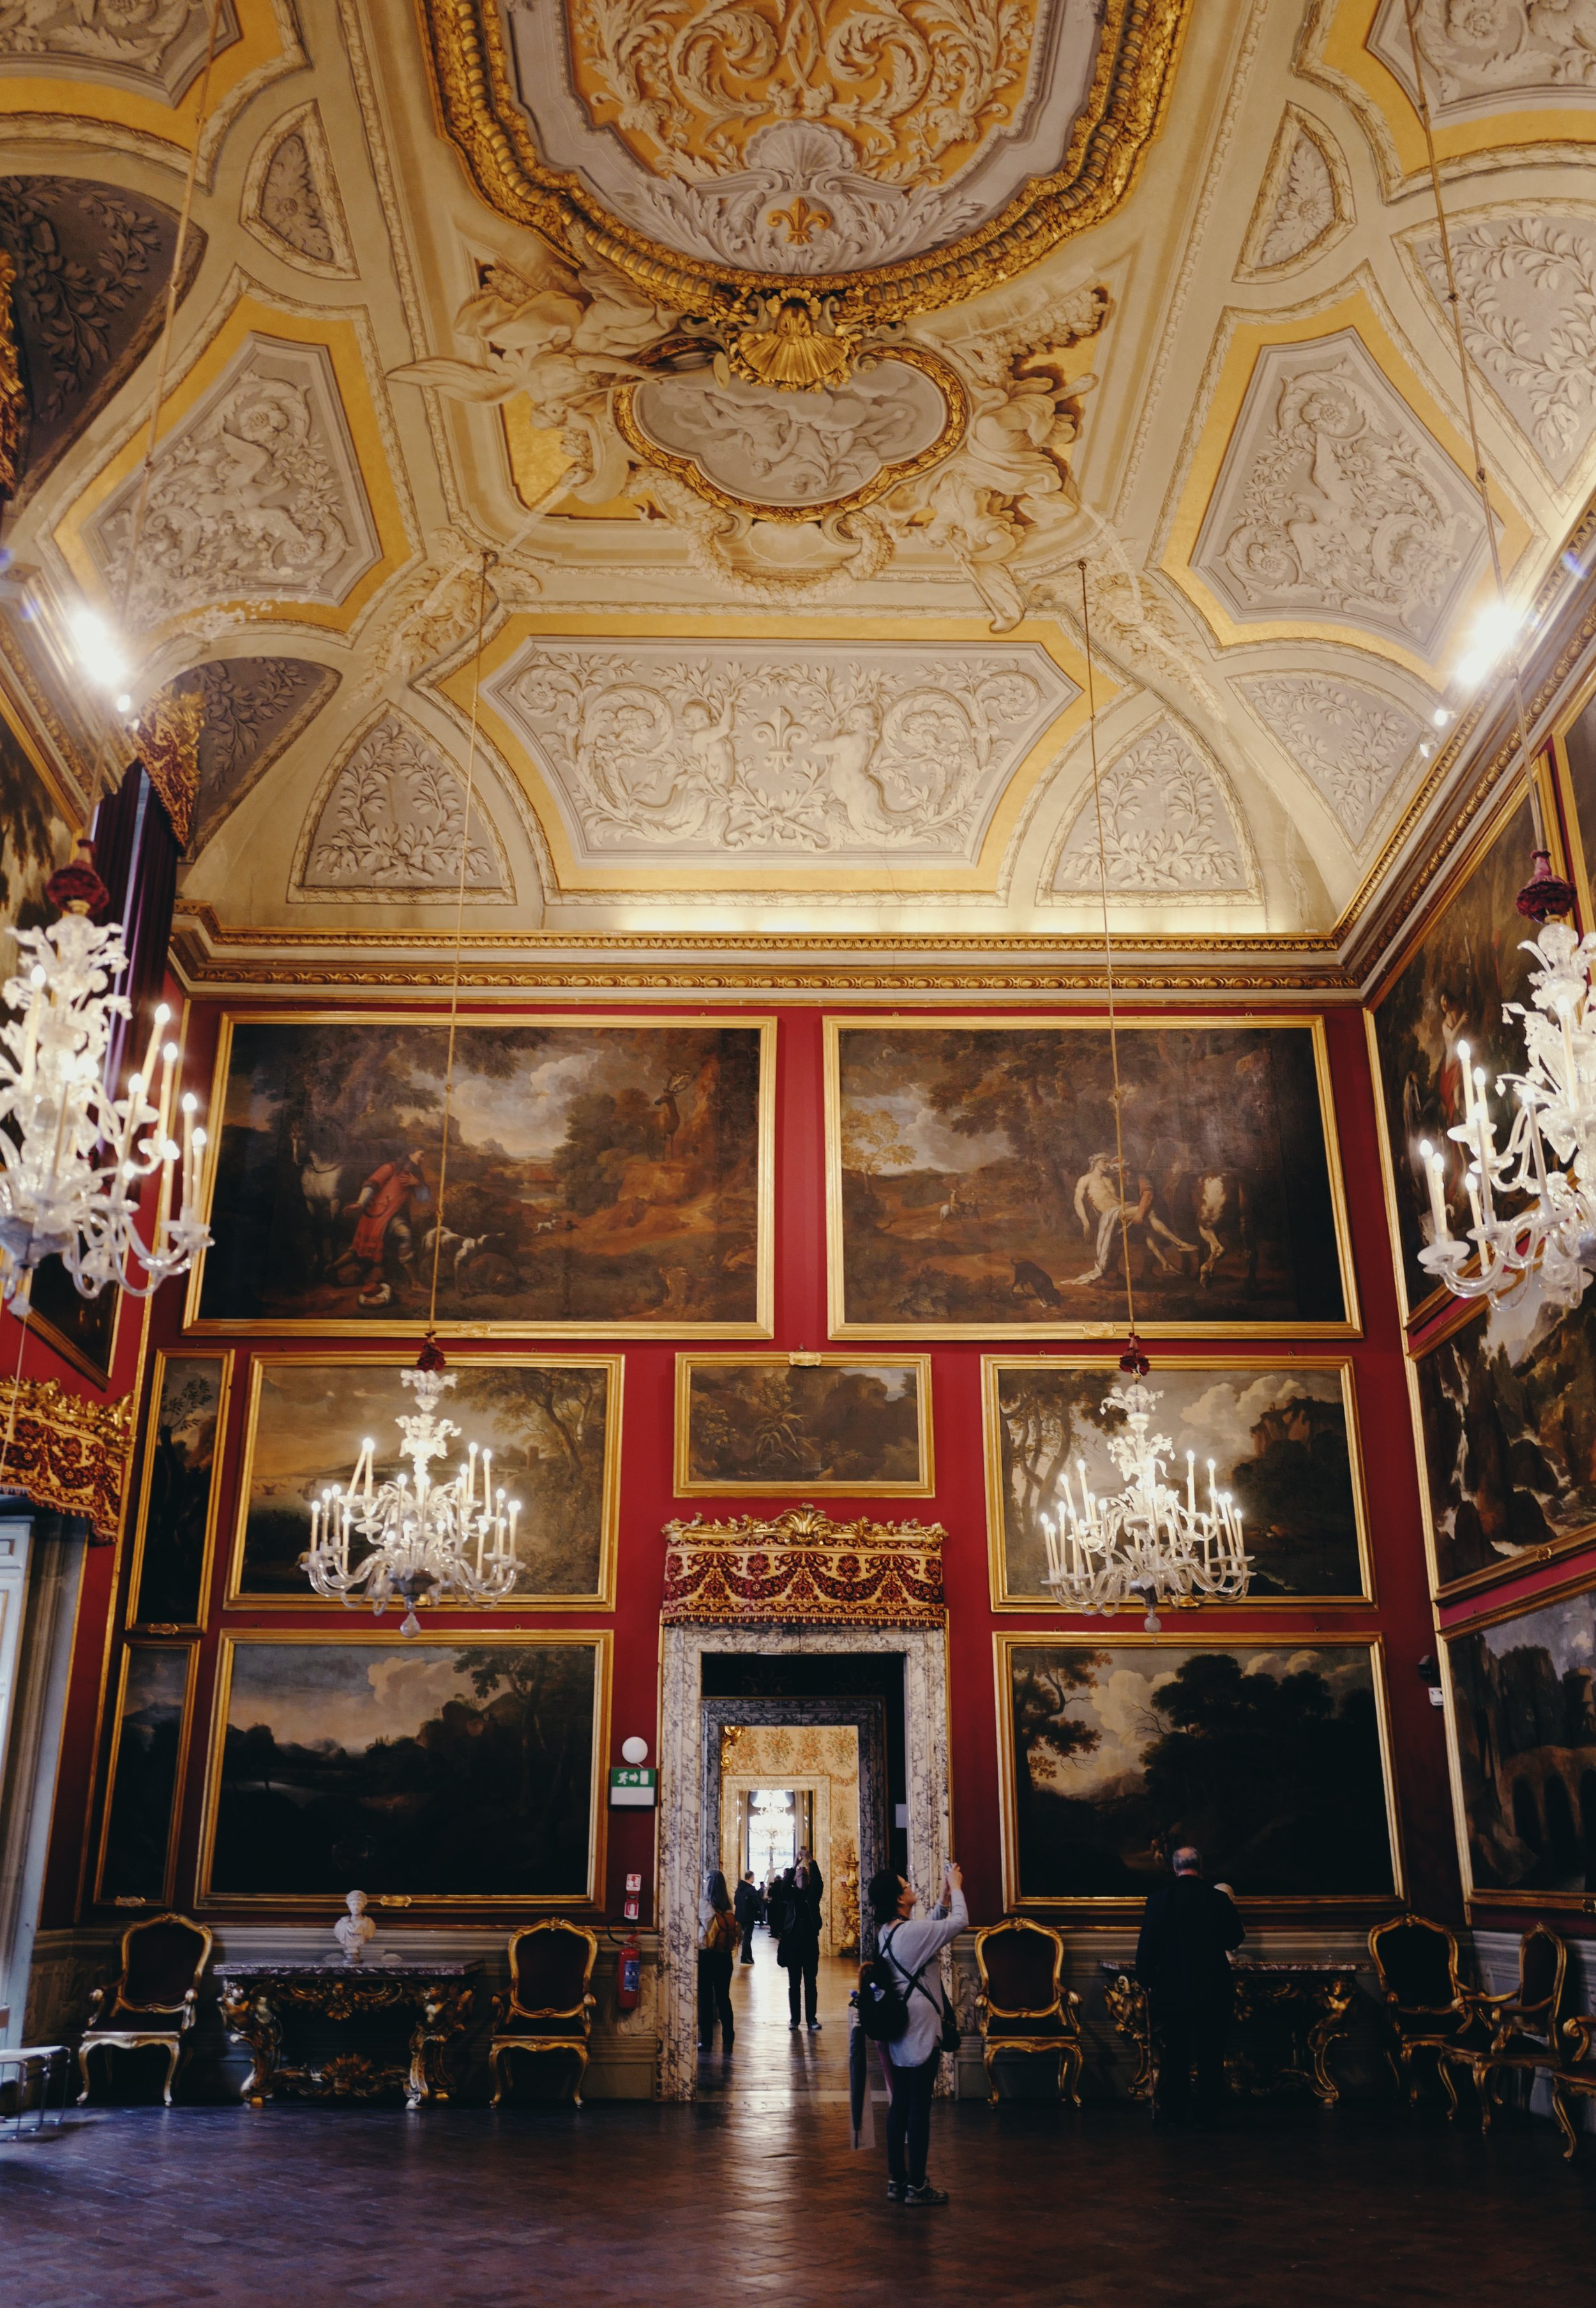 Galleria Doria Pamphilj Pussino Room: Pieces are by Pussino and Guillame Courtois which show mainly Roman landscapes.